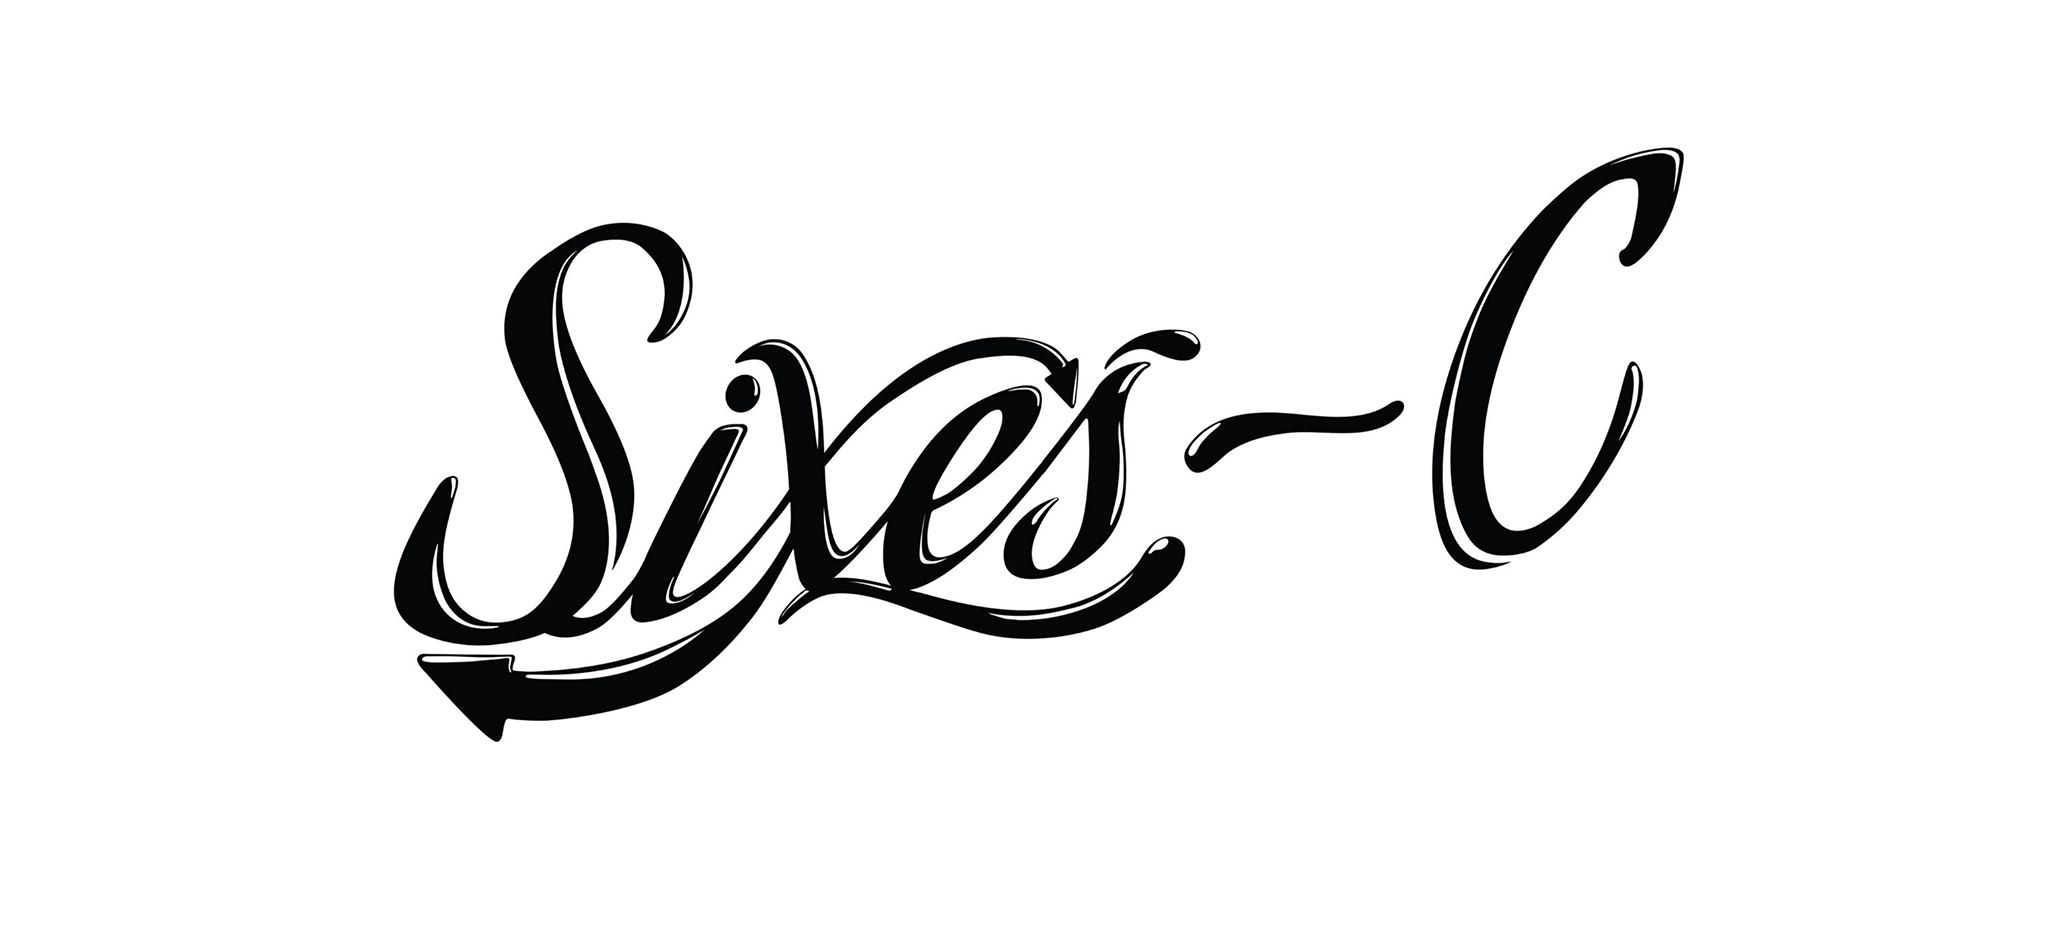 Sixes-C Offical Merchandise